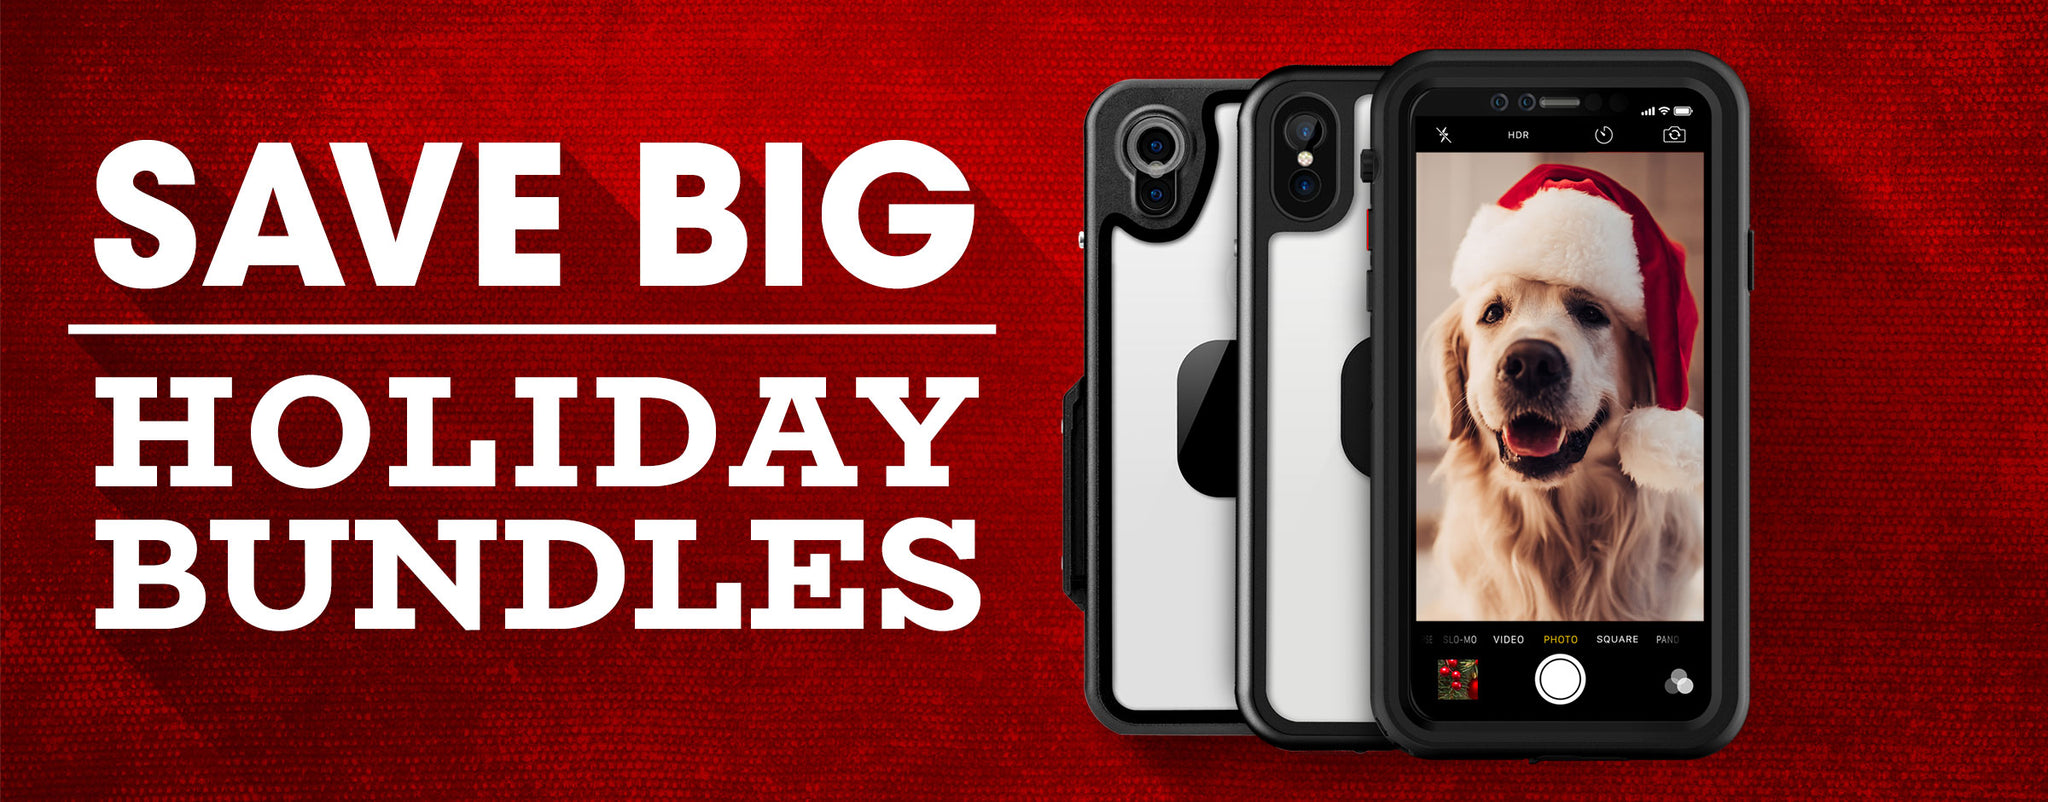 iPhone Holiday Gift Ideas